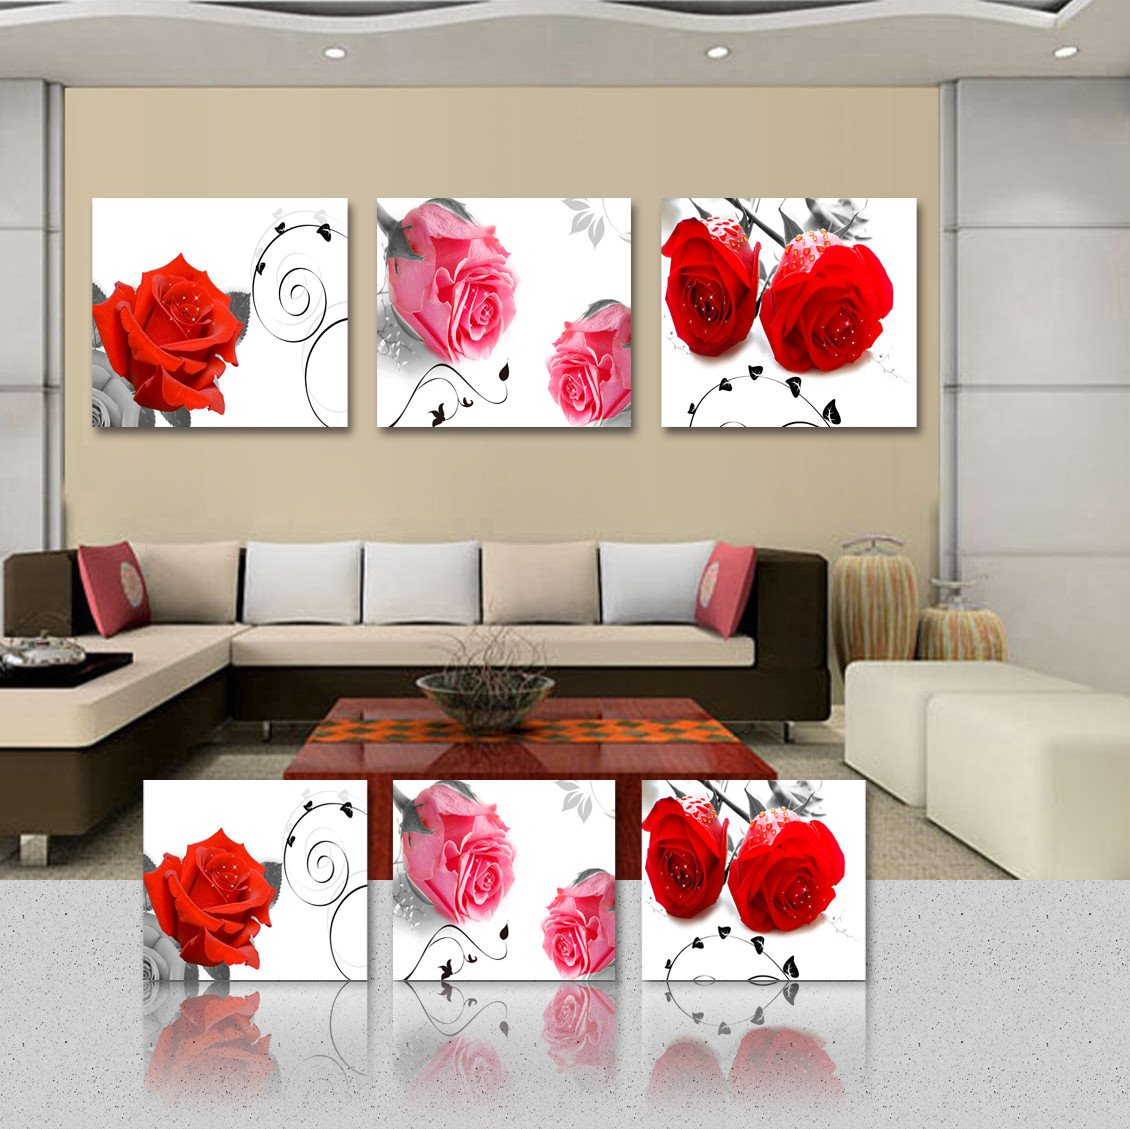 New Arrival Pink And Red Roses Film Art Wall Prints